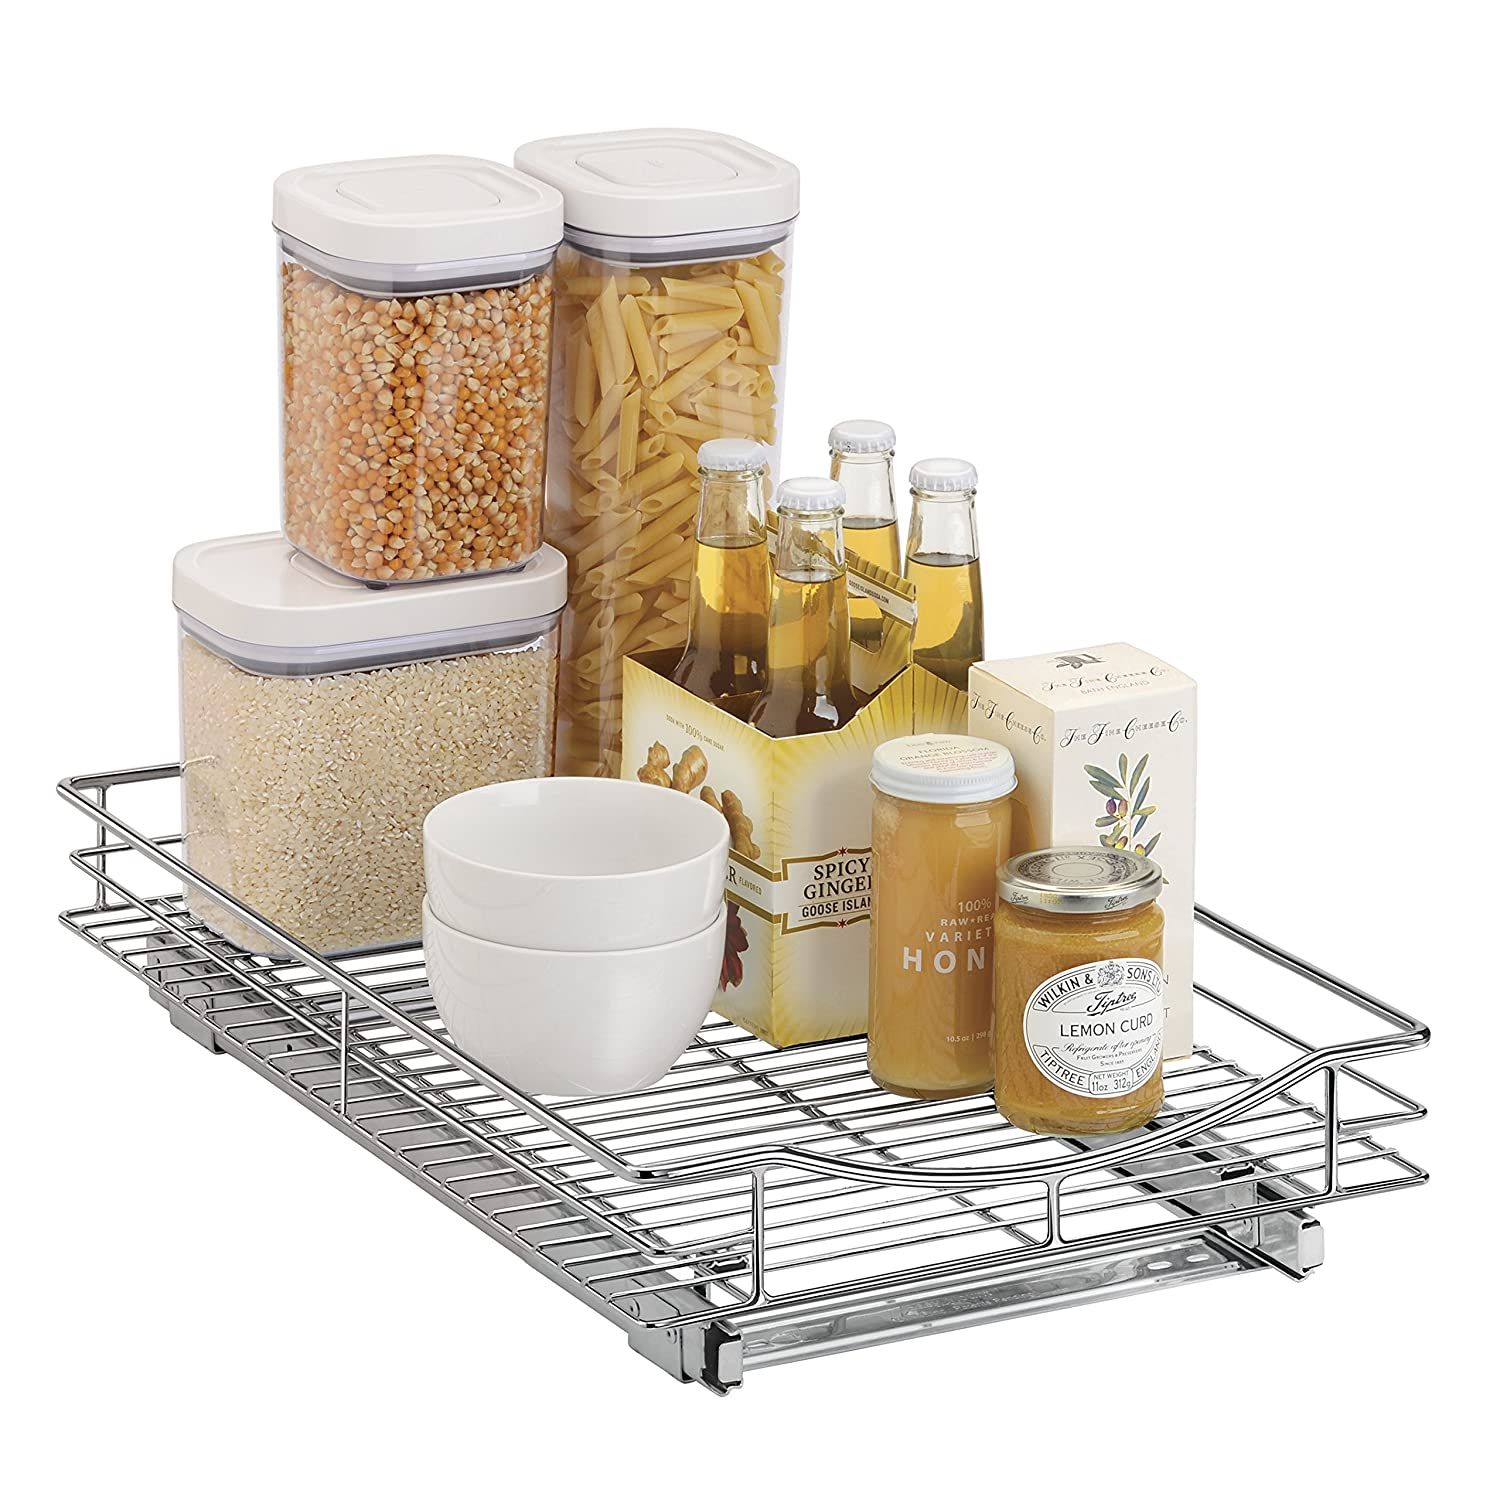 Lynk roll out under sink cabinet organizer pull out two tier sliding - Amazon Com Lynk Professional Roll Out Cabinet Organizer Pull Out Under Cabinet Sliding Shelf 11 Inch Wide X 21 Inch Deep Chrome Home Kitchen